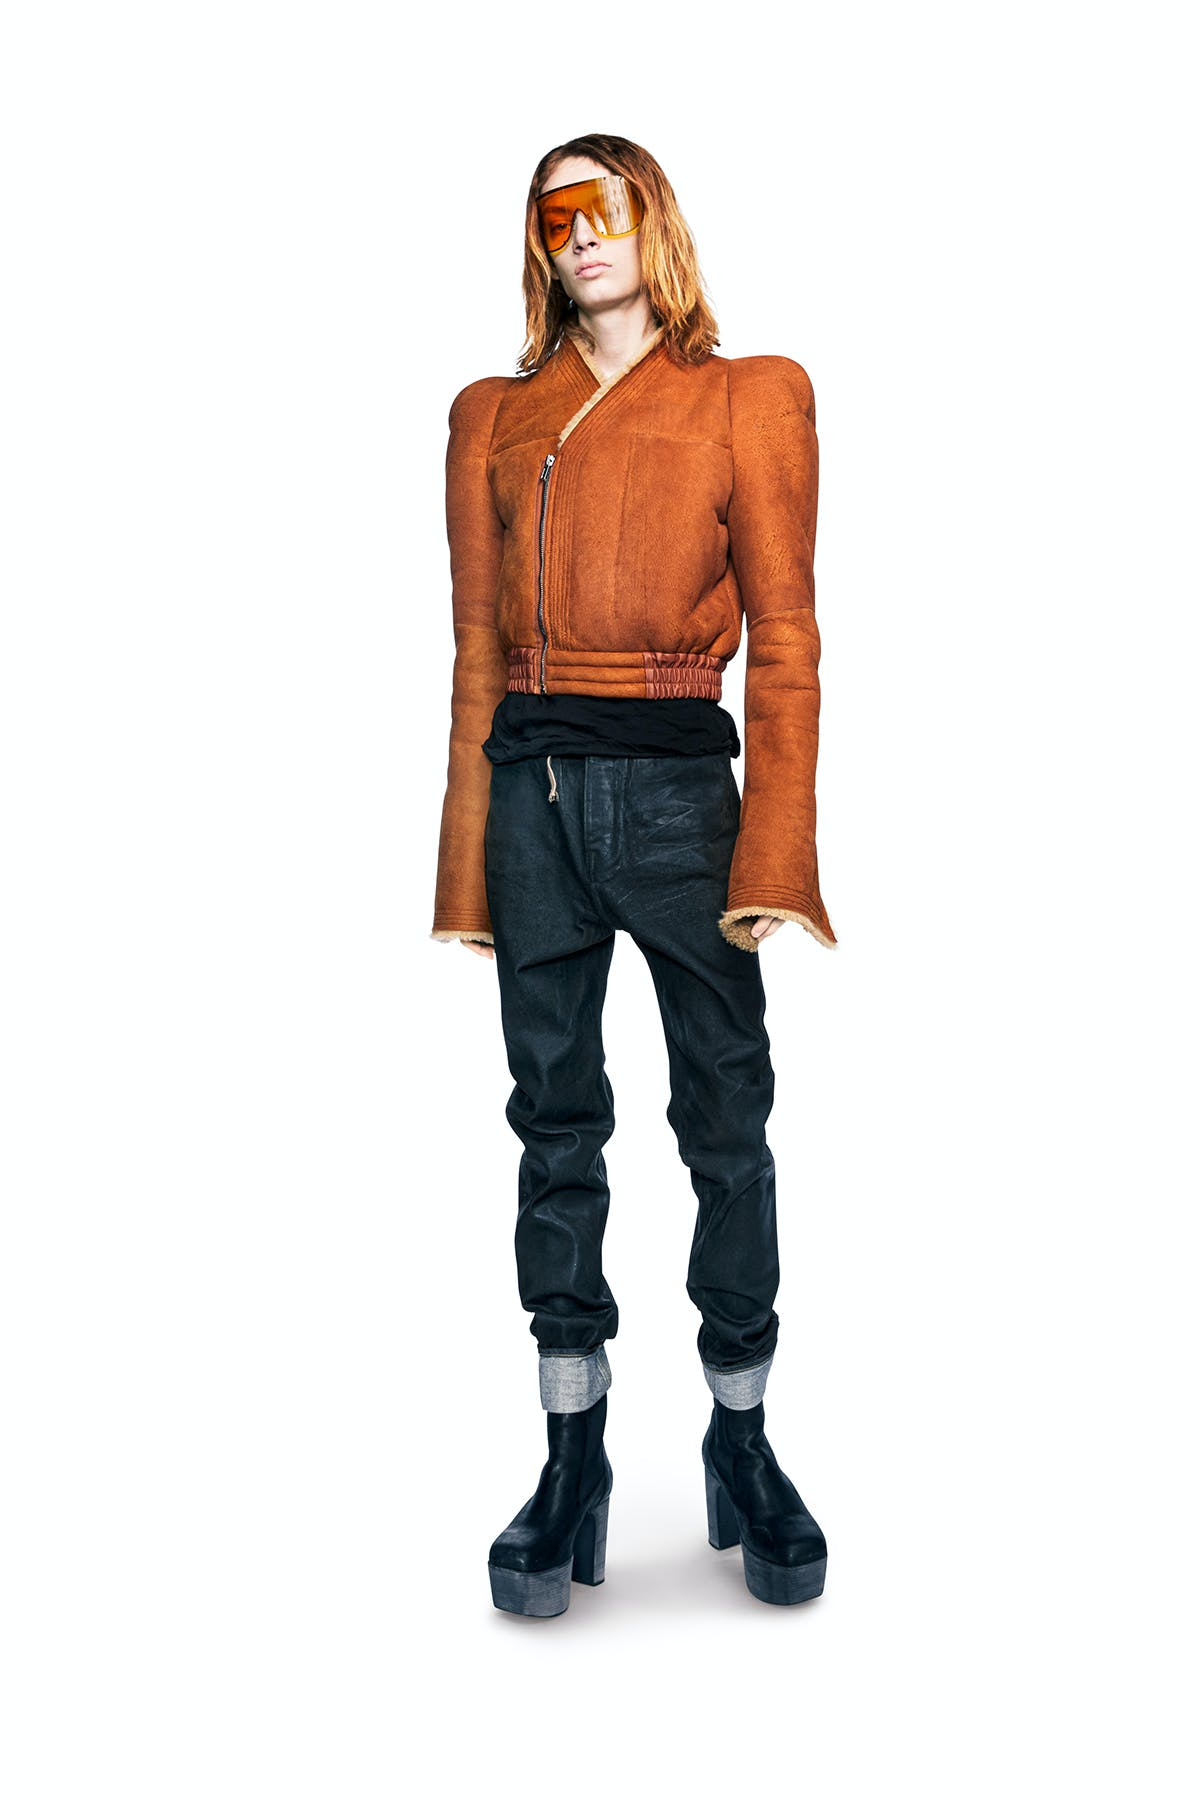 Rick Owens Campaign Sheild Sunglasses In Orange Sherling Stiched Panel Jacket in Orange Jeans In Navy Kiss Boots in Black Leather Mens FW19 Larry